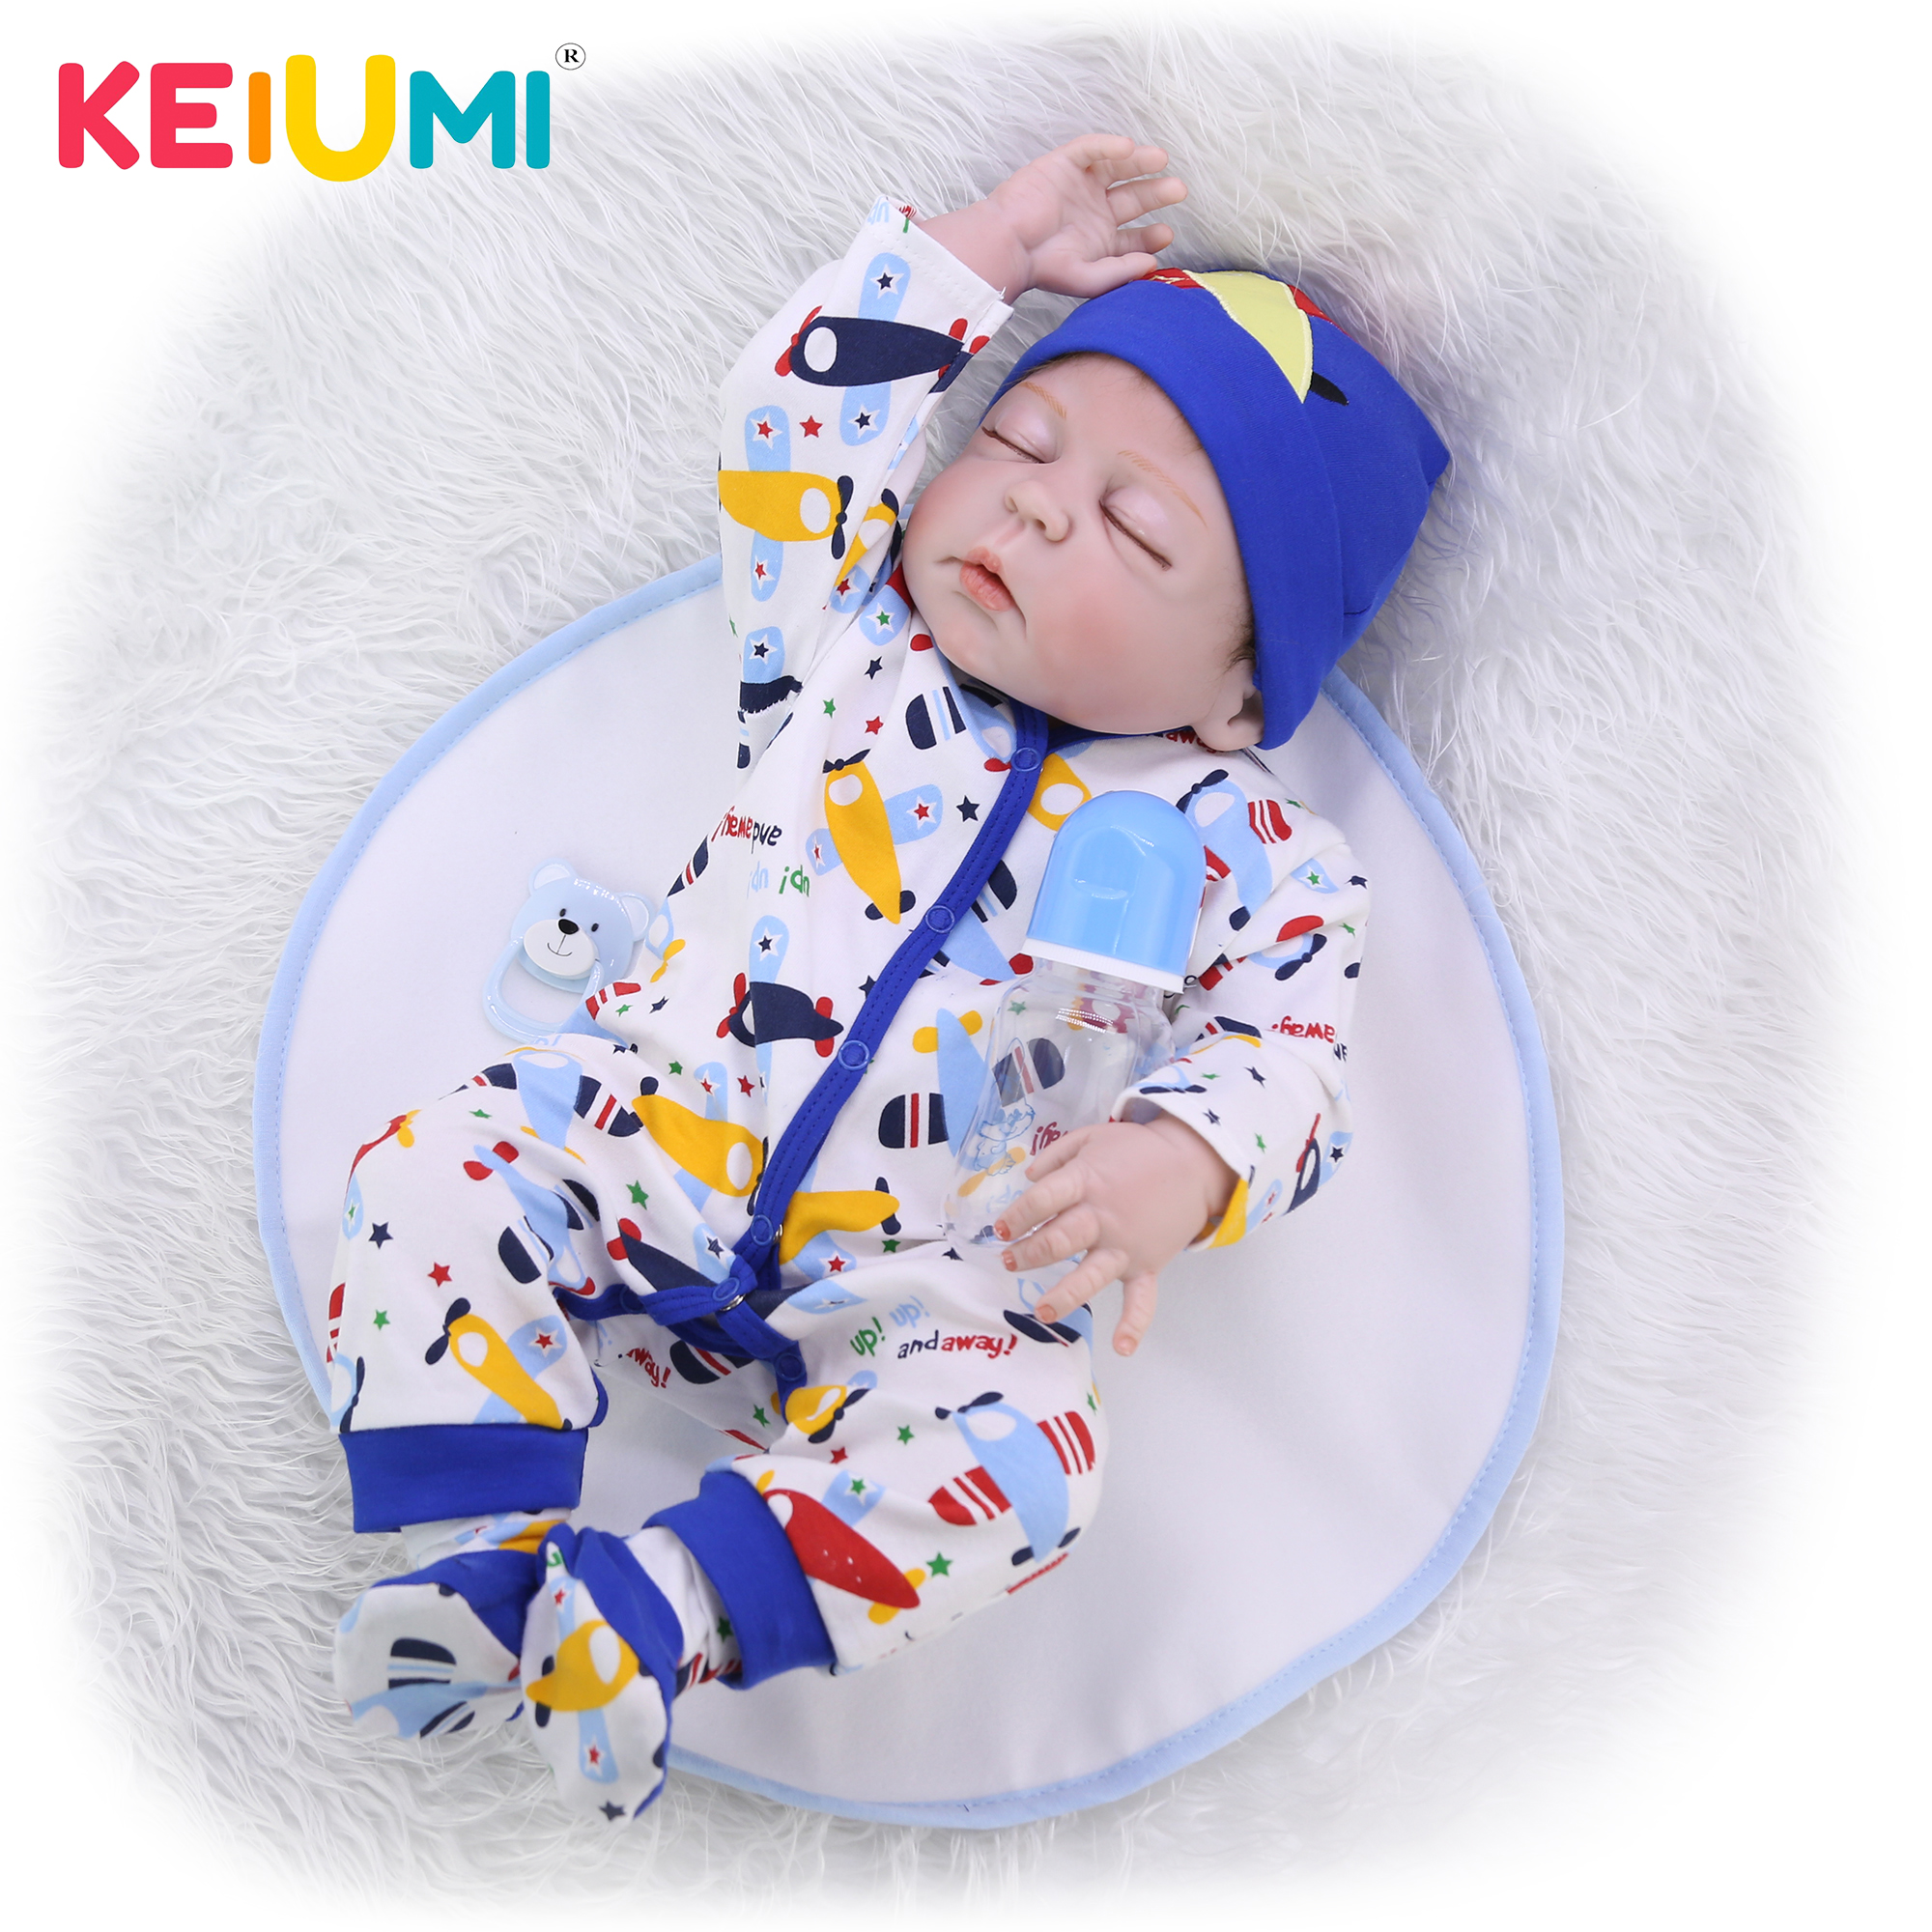 23'' 57 cm Limited Collection Reborn Dolls Whole Silicone Vinyl Realistic Sleeping Boy Baby Doll Toy For Child Birthday Gift-in Dolls from Toys & Hobbies    1